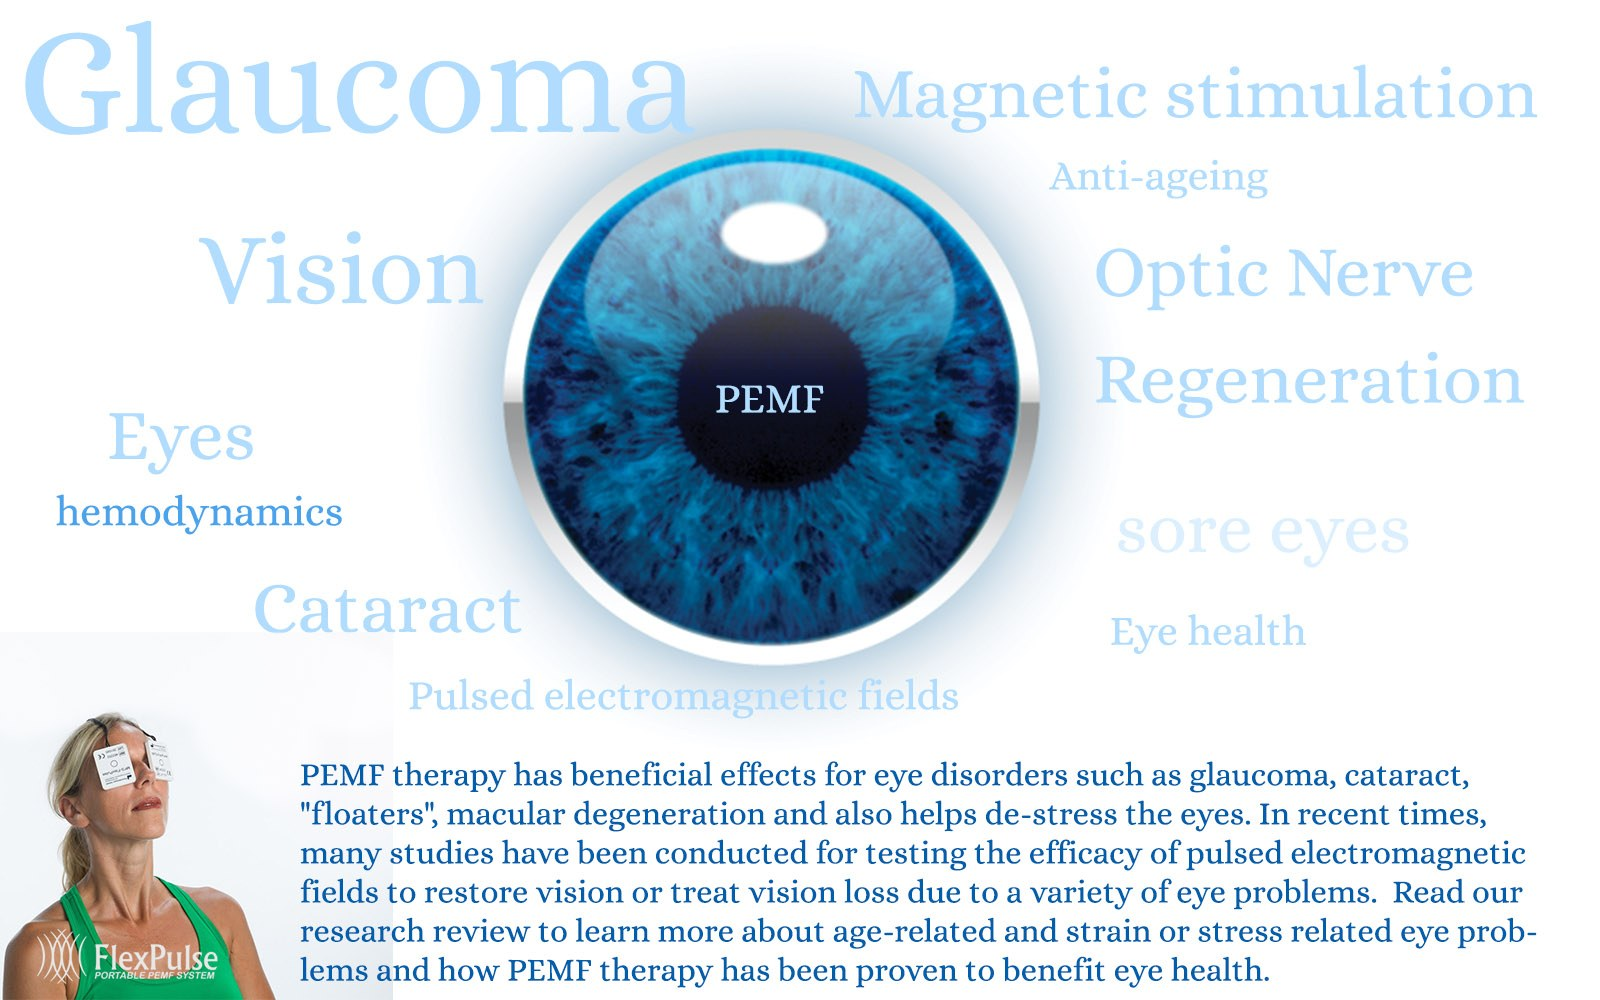 Pulsed Electromagnetic Field (PEMF) Therapy in Glaucoma